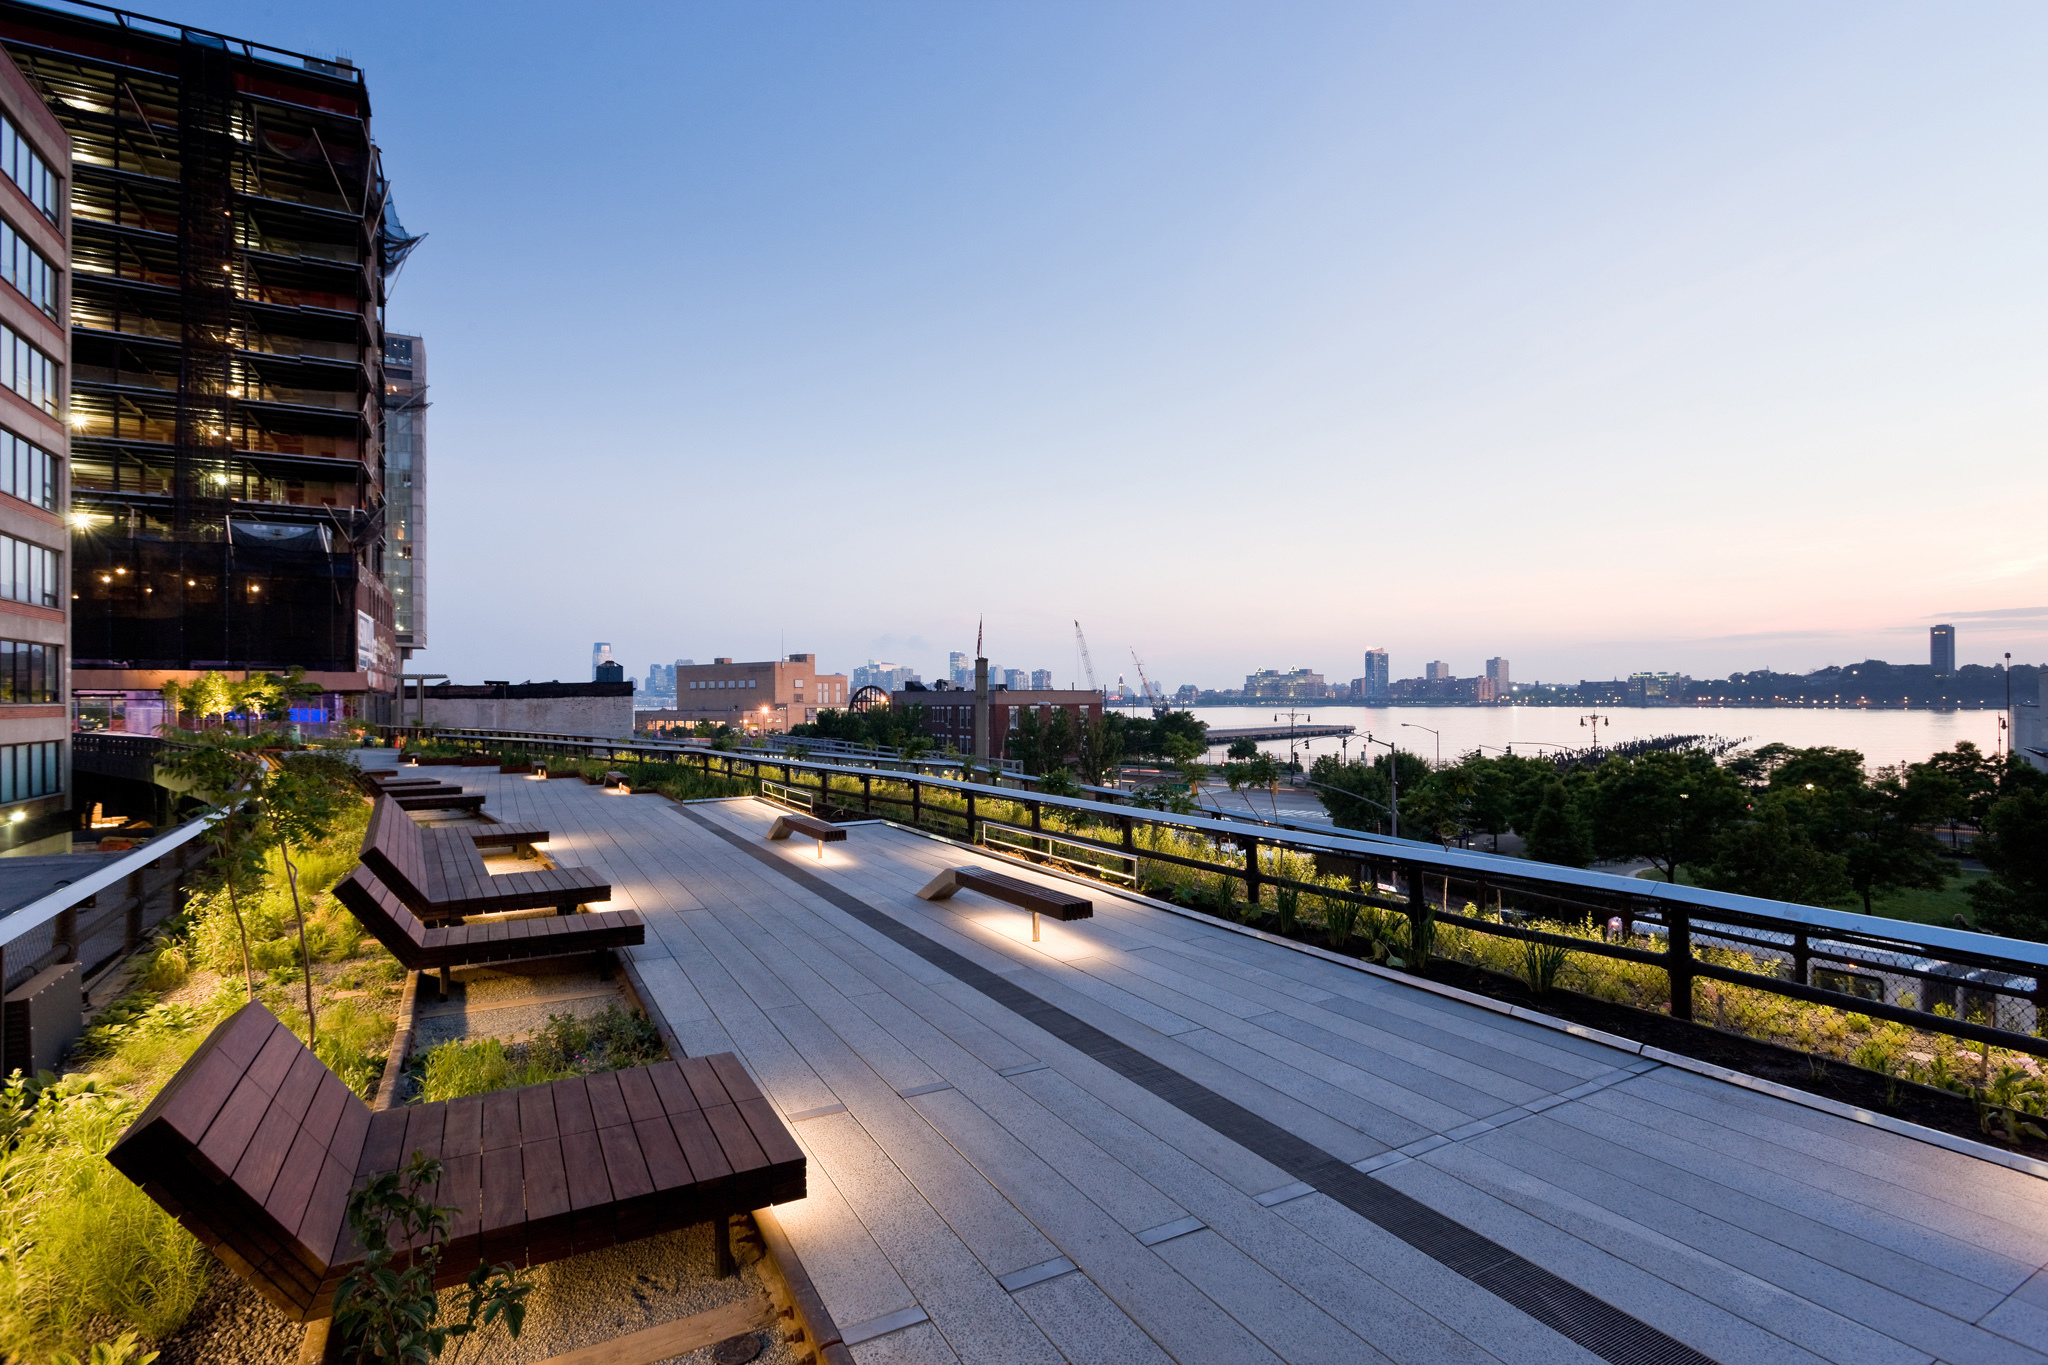 The High Line in NYC guide